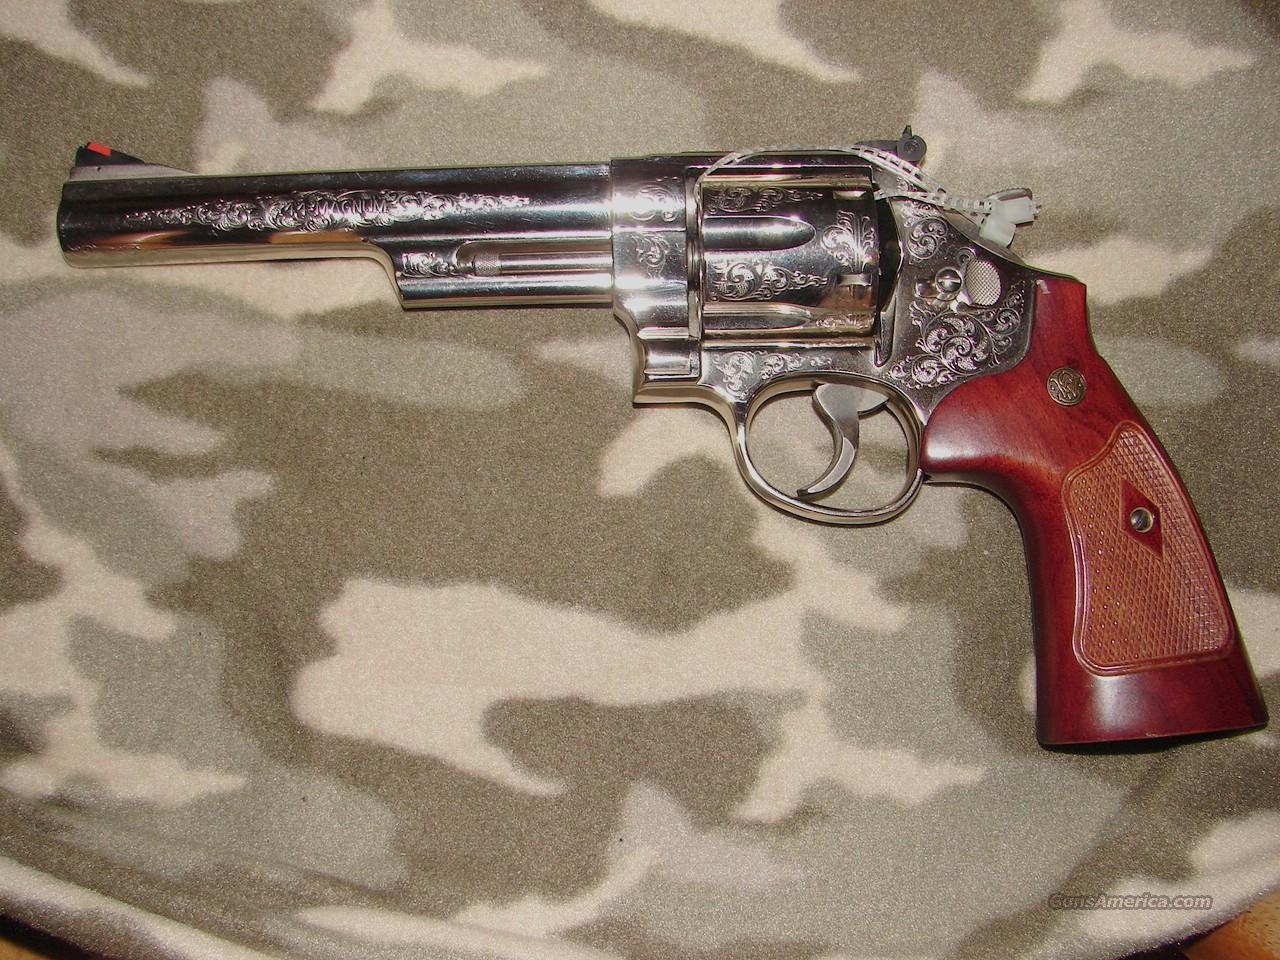 Smith & Wesson 29-10 Engraved Revolver  Guns > Pistols > Smith & Wesson Revolvers > Full Frame Revolver